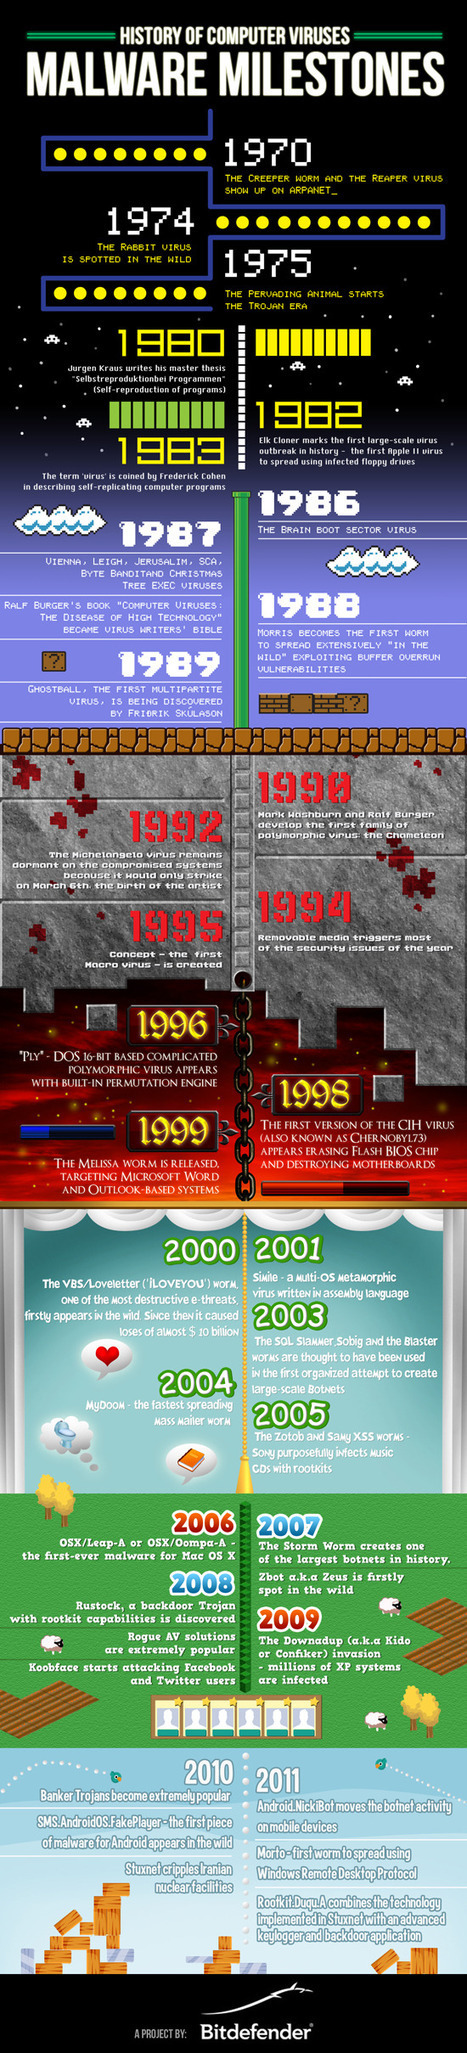 History of Computer Viruses | Infographic | EDTECH - DIGITAL WORLDS - MEDIA LITERACY | Scoop.it